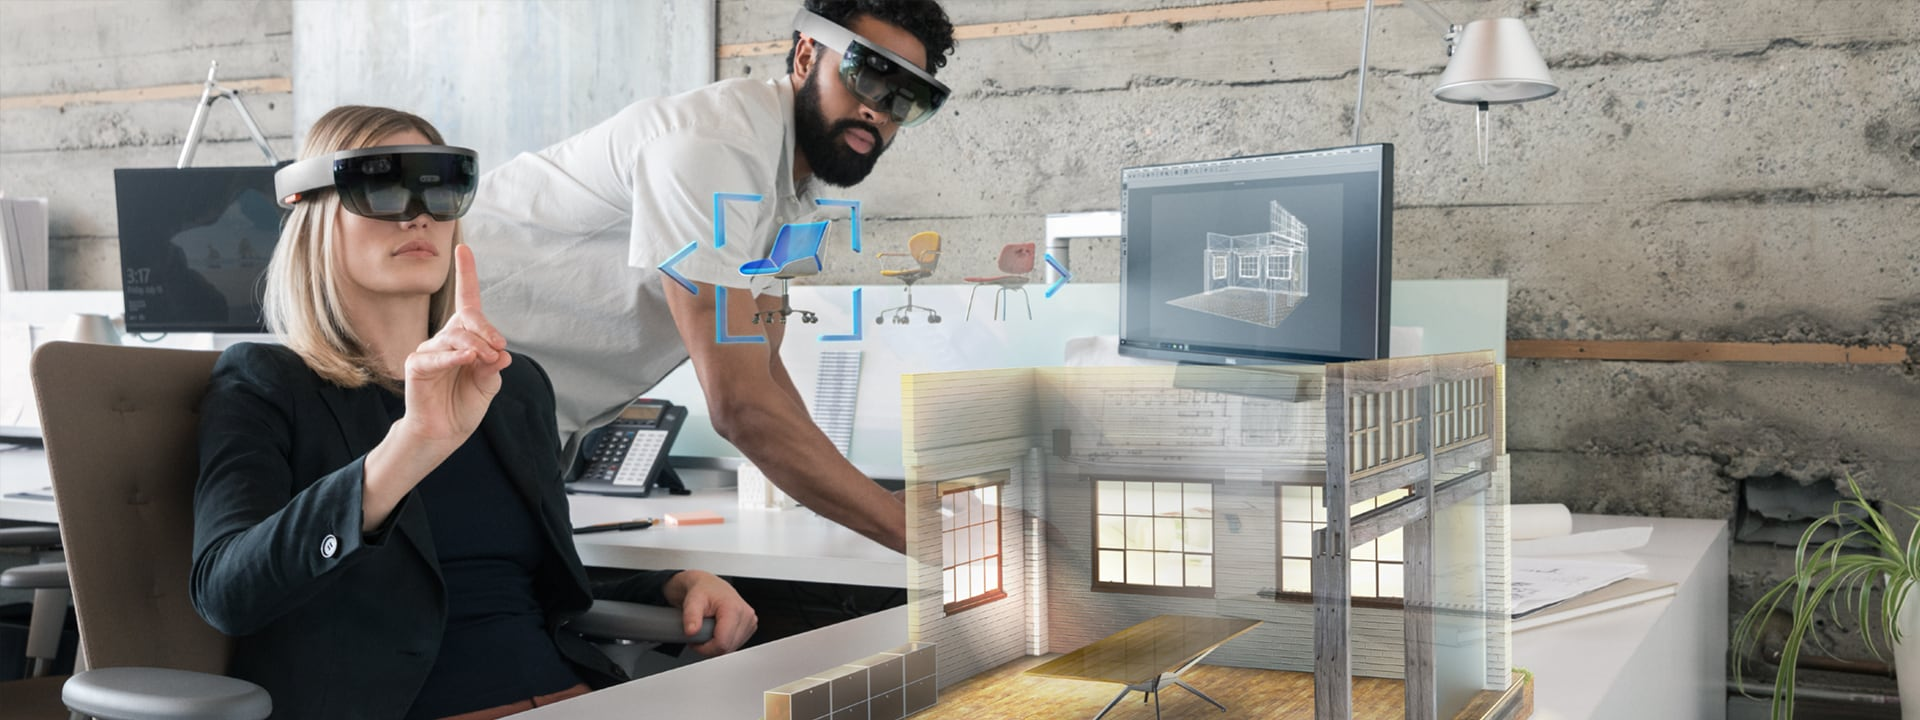 Architects use HoloLens to create a 3D architectural model in mixed reality